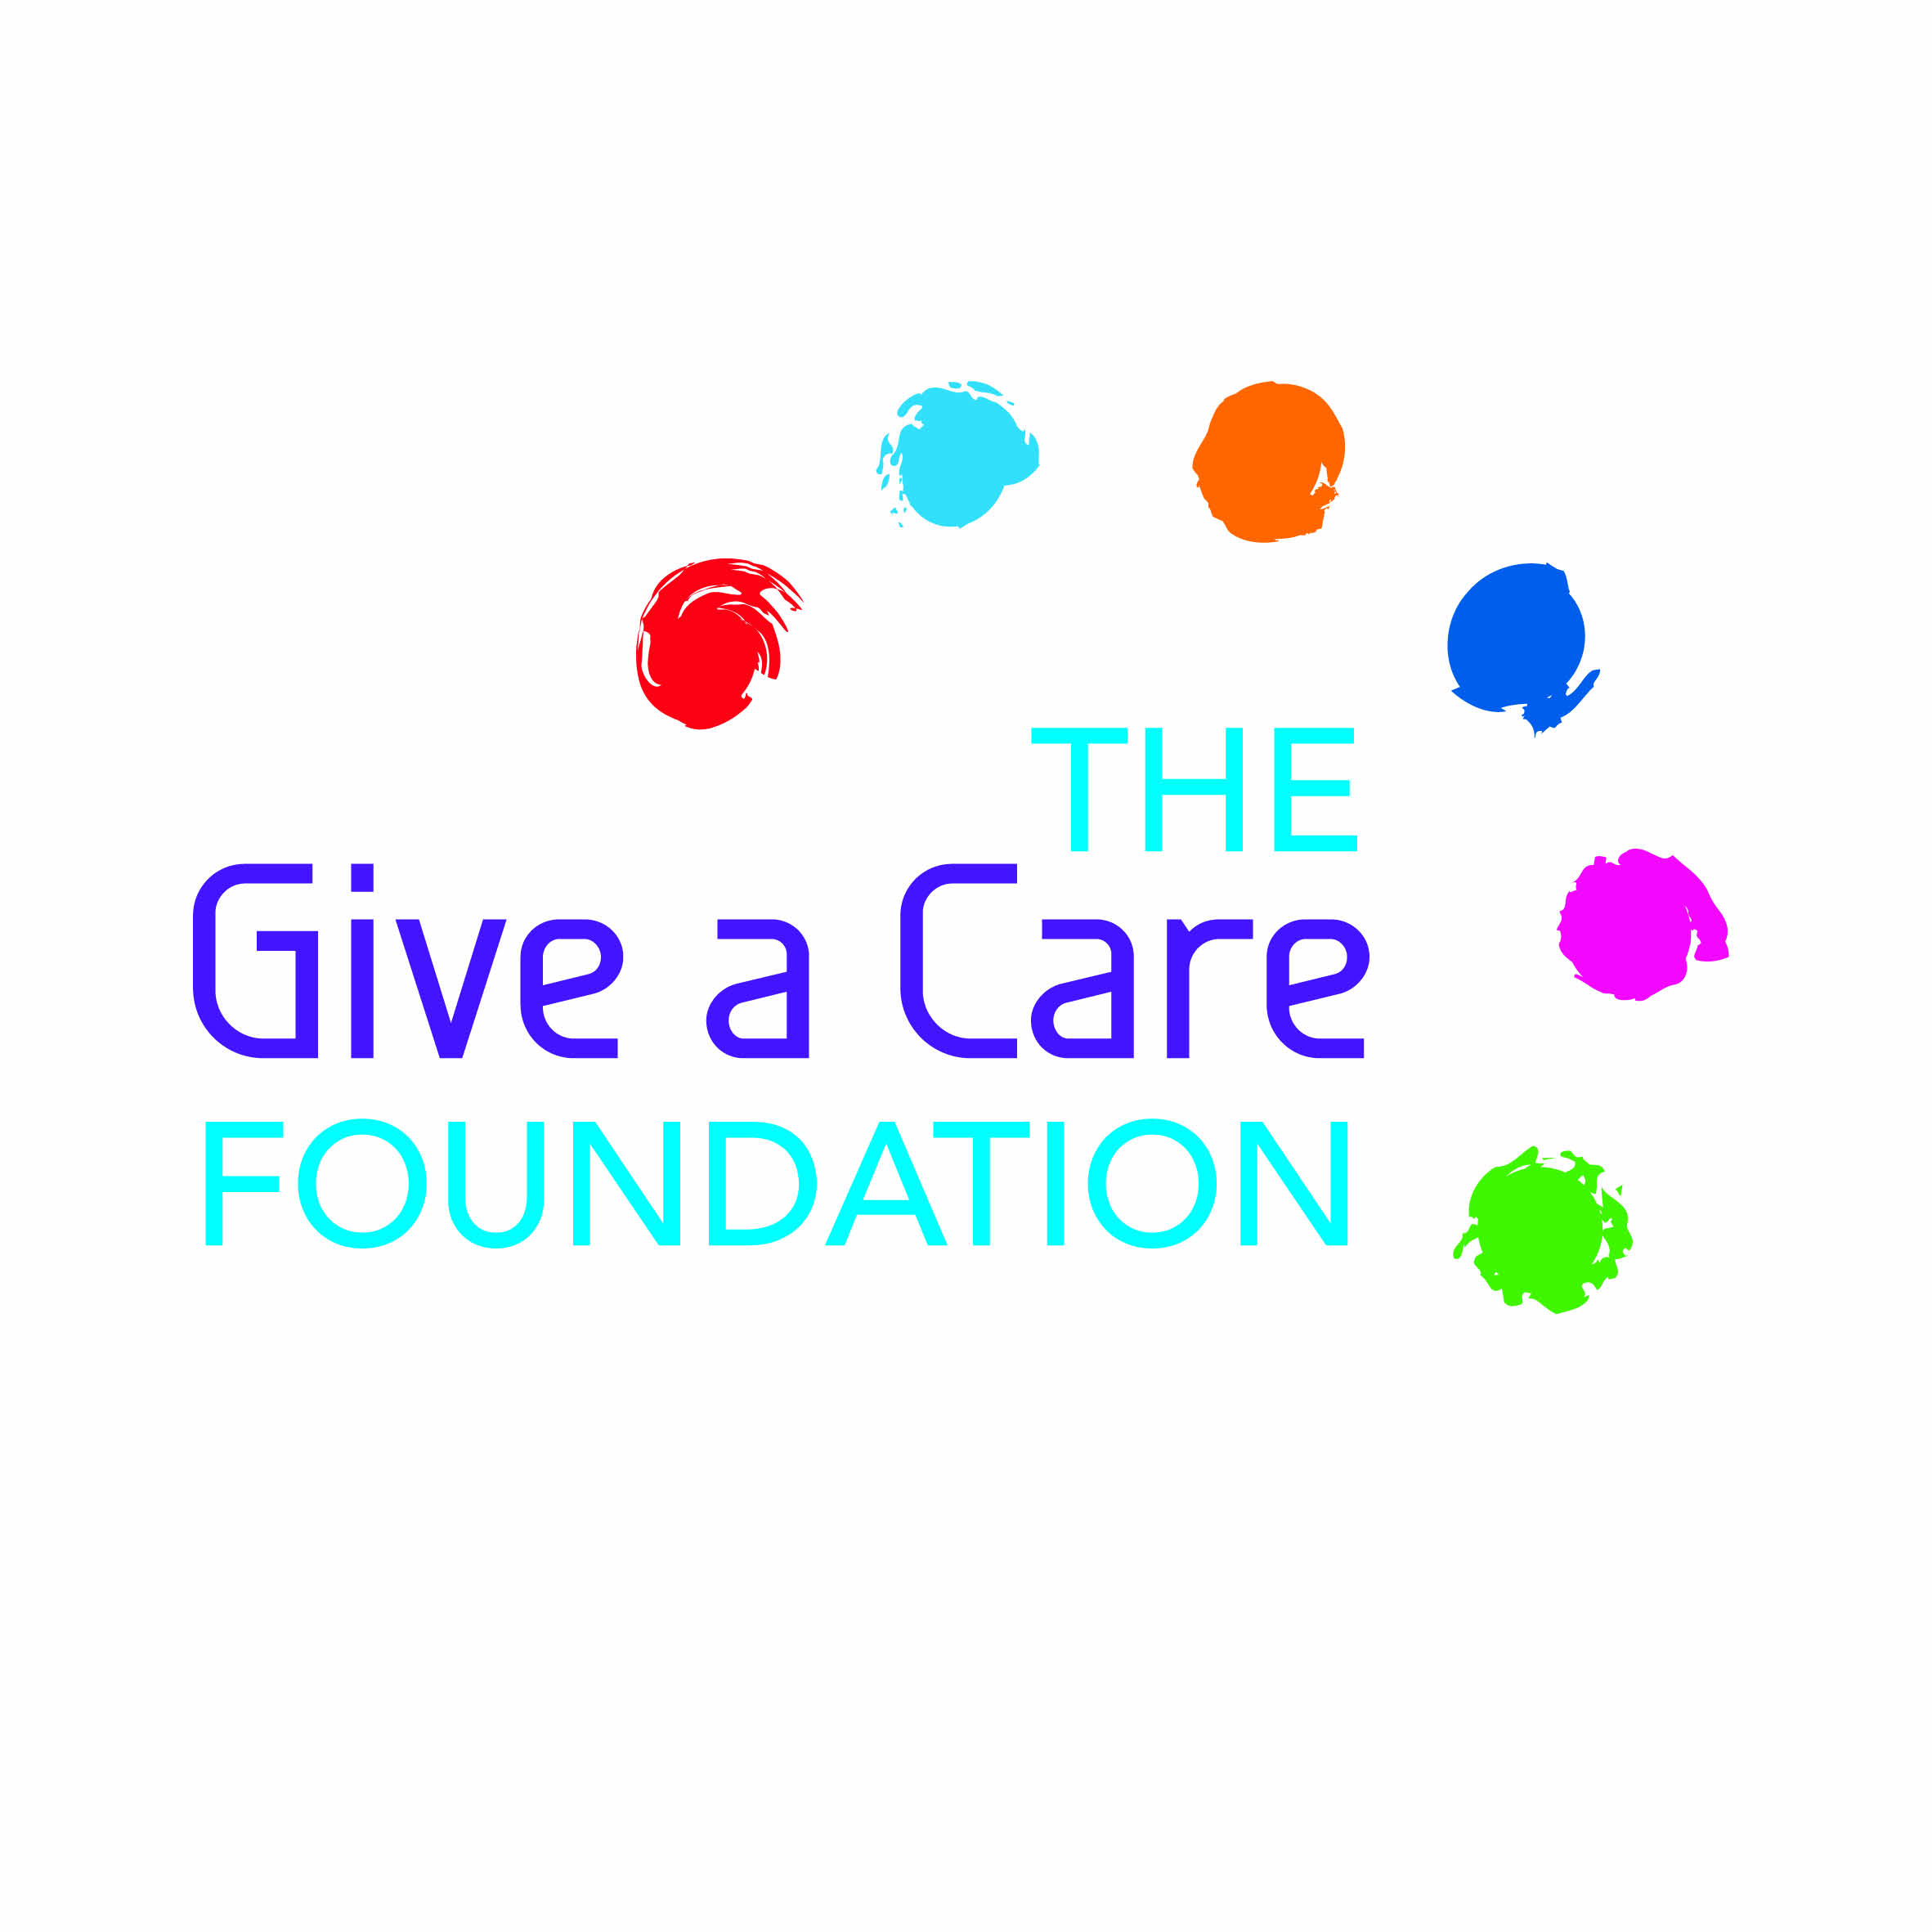 The Give a Care Foundation